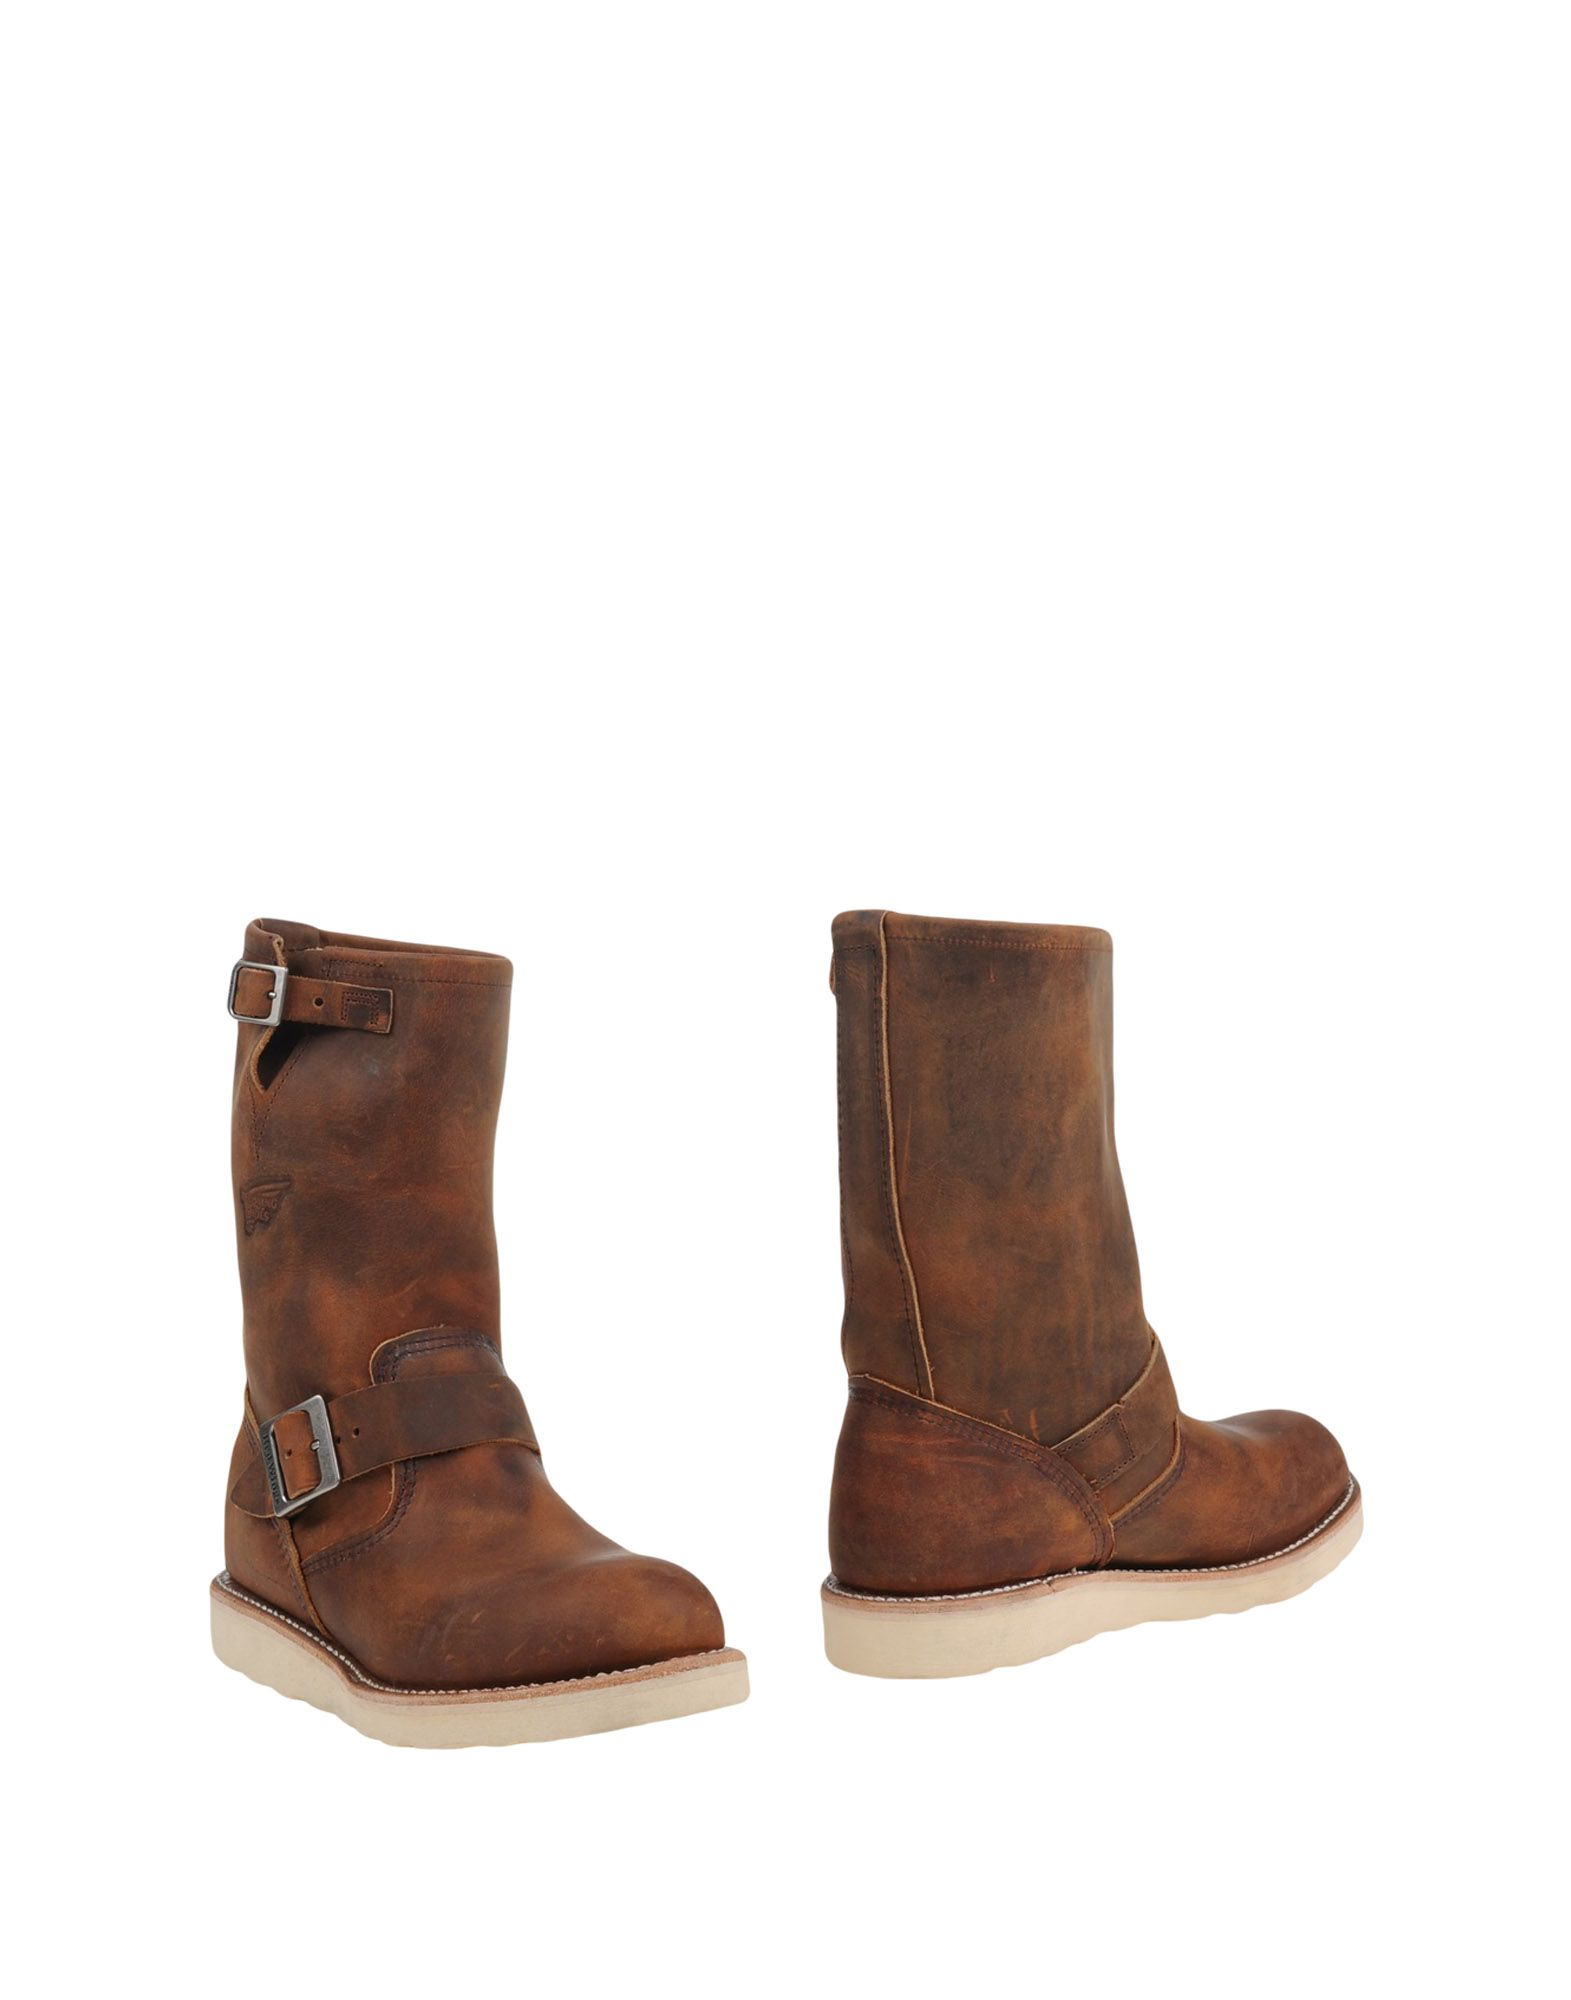 Red Wing Shoes Stiefelette strapazierfähige Damen  44947486CXGut aussehende strapazierfähige Stiefelette Schuhe fb832e